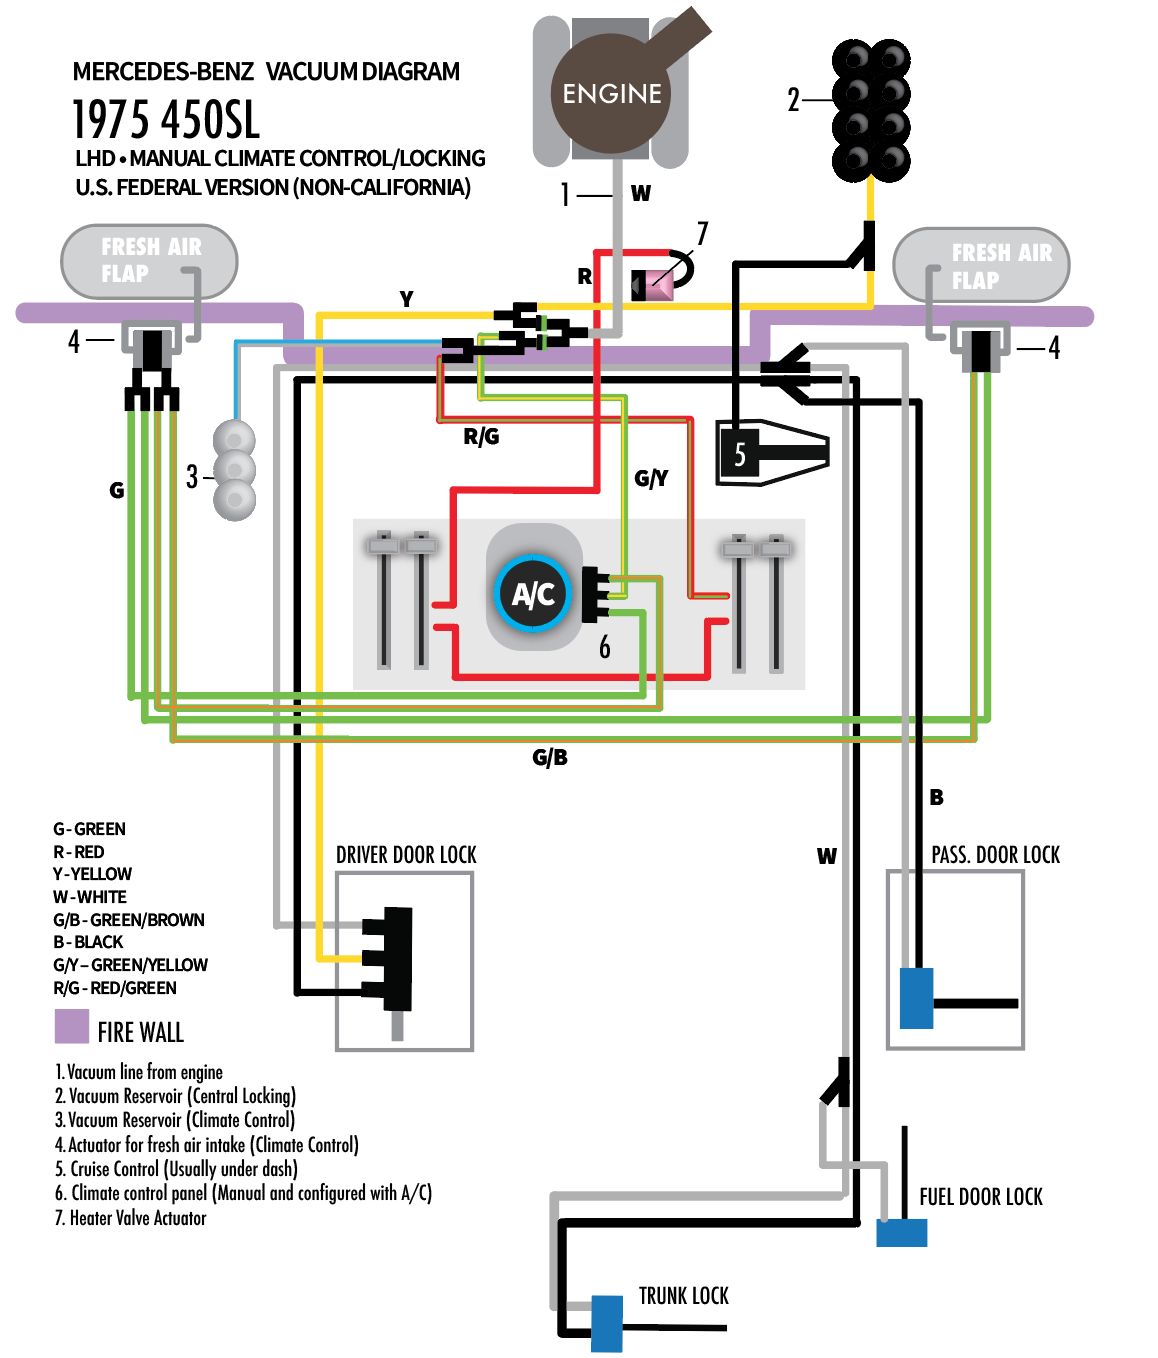 hight resolution of mercedes benz vacuum line diagram wiring diagram used 1985 mercedes benz fuel system diagram